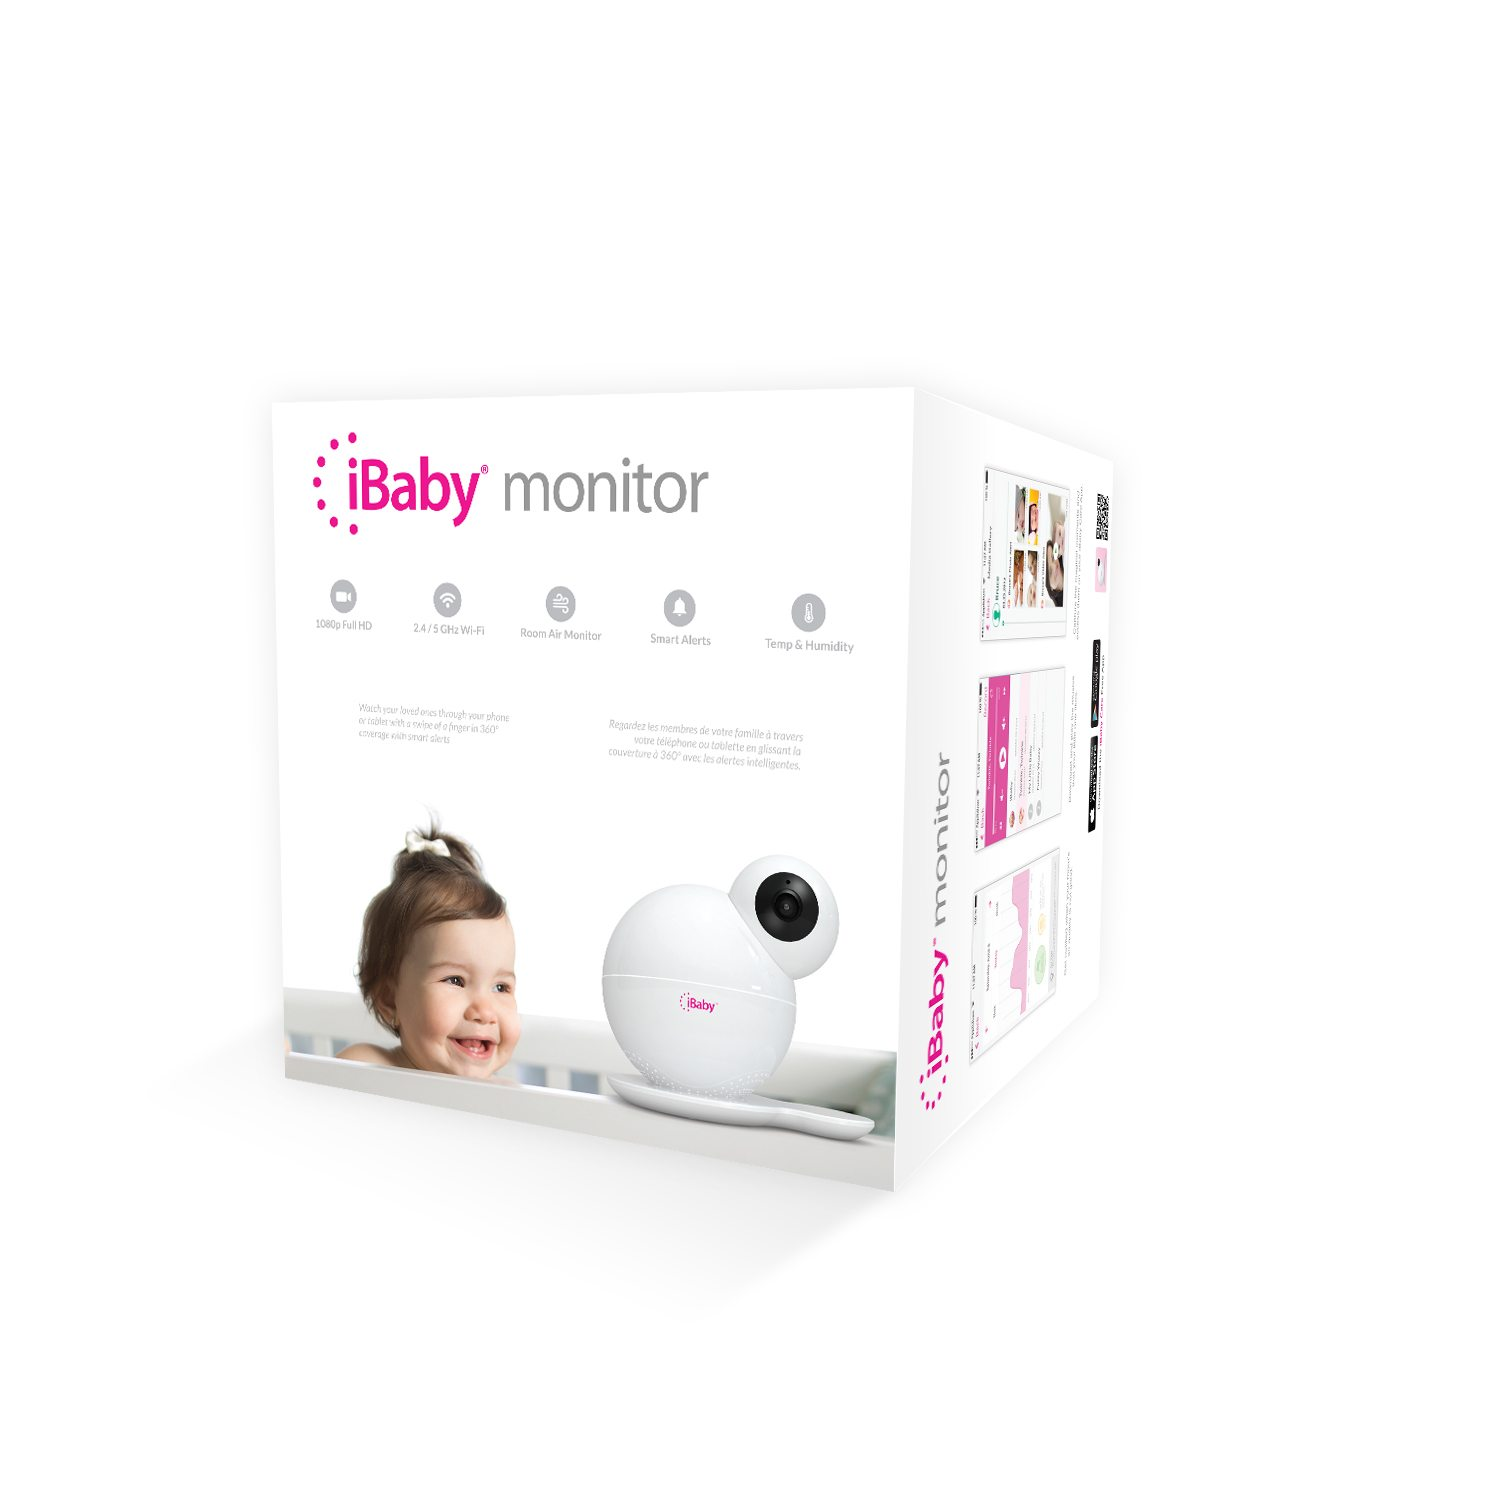 iBaby Monitor prin iCentre